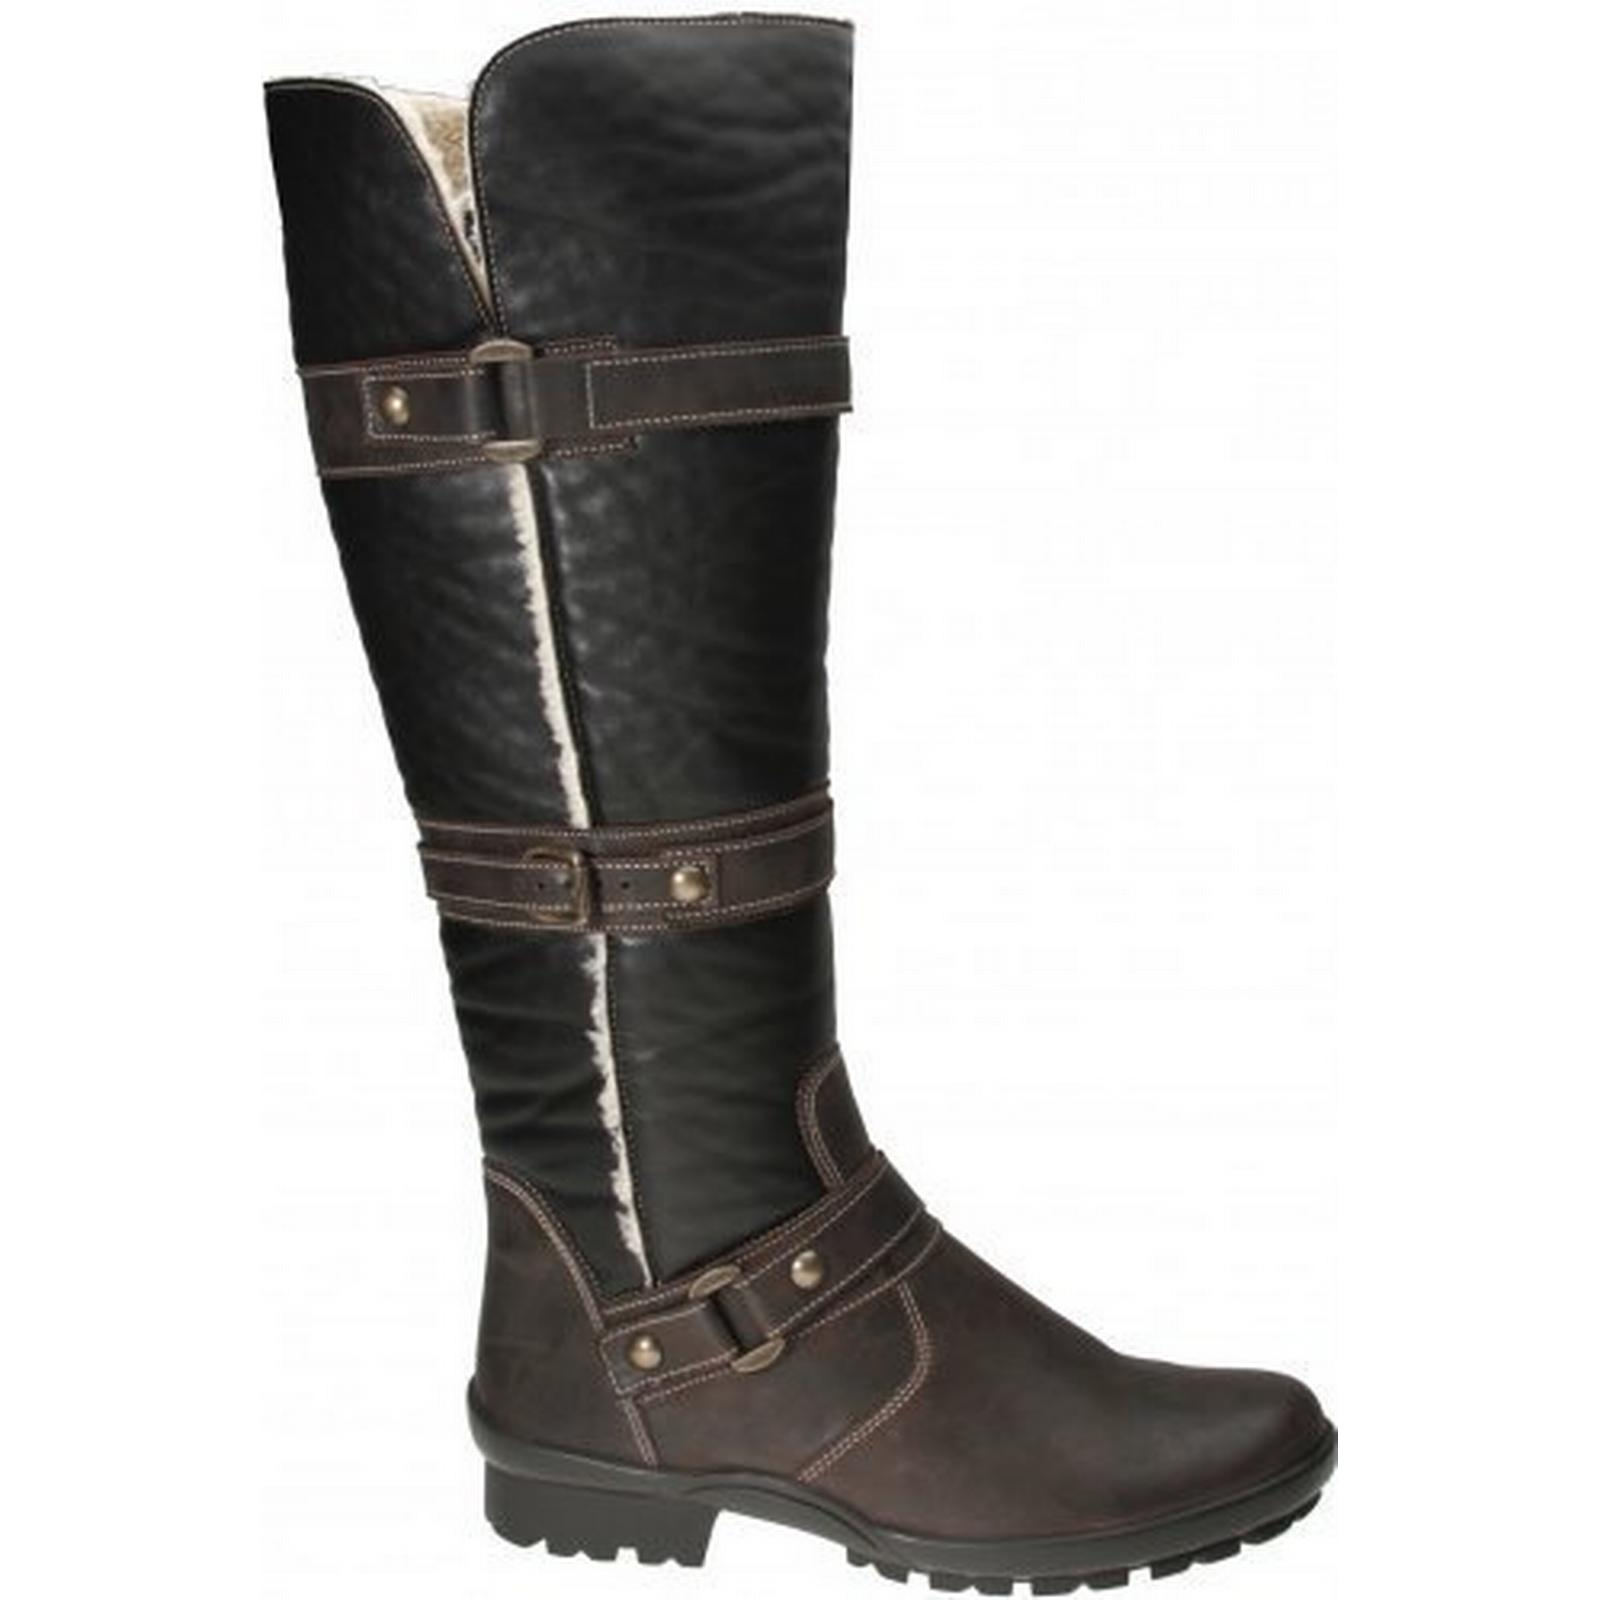 Gabor Dominica riding style ladies boots in in boots espresso 33.732.38 Size: 3 f8dc73